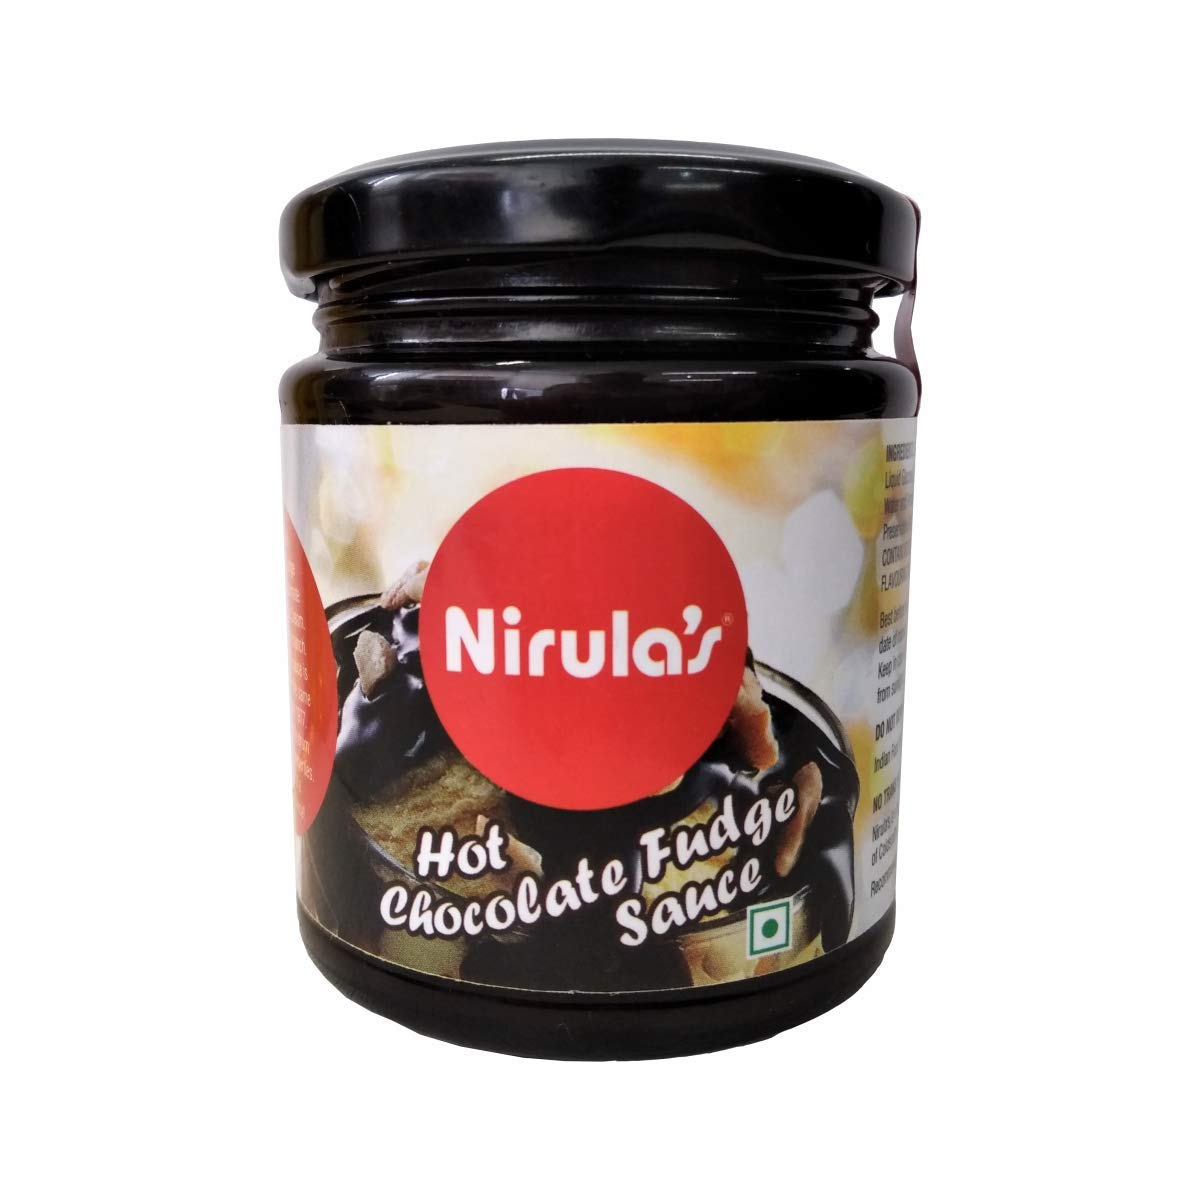 Nirula S Original Hot Chocolate Fudge Sauce Handmade Spread Ice Cream And Cake Topping With Fresh Ingredients 230gm Amazon In Grocery Gourmet Foods